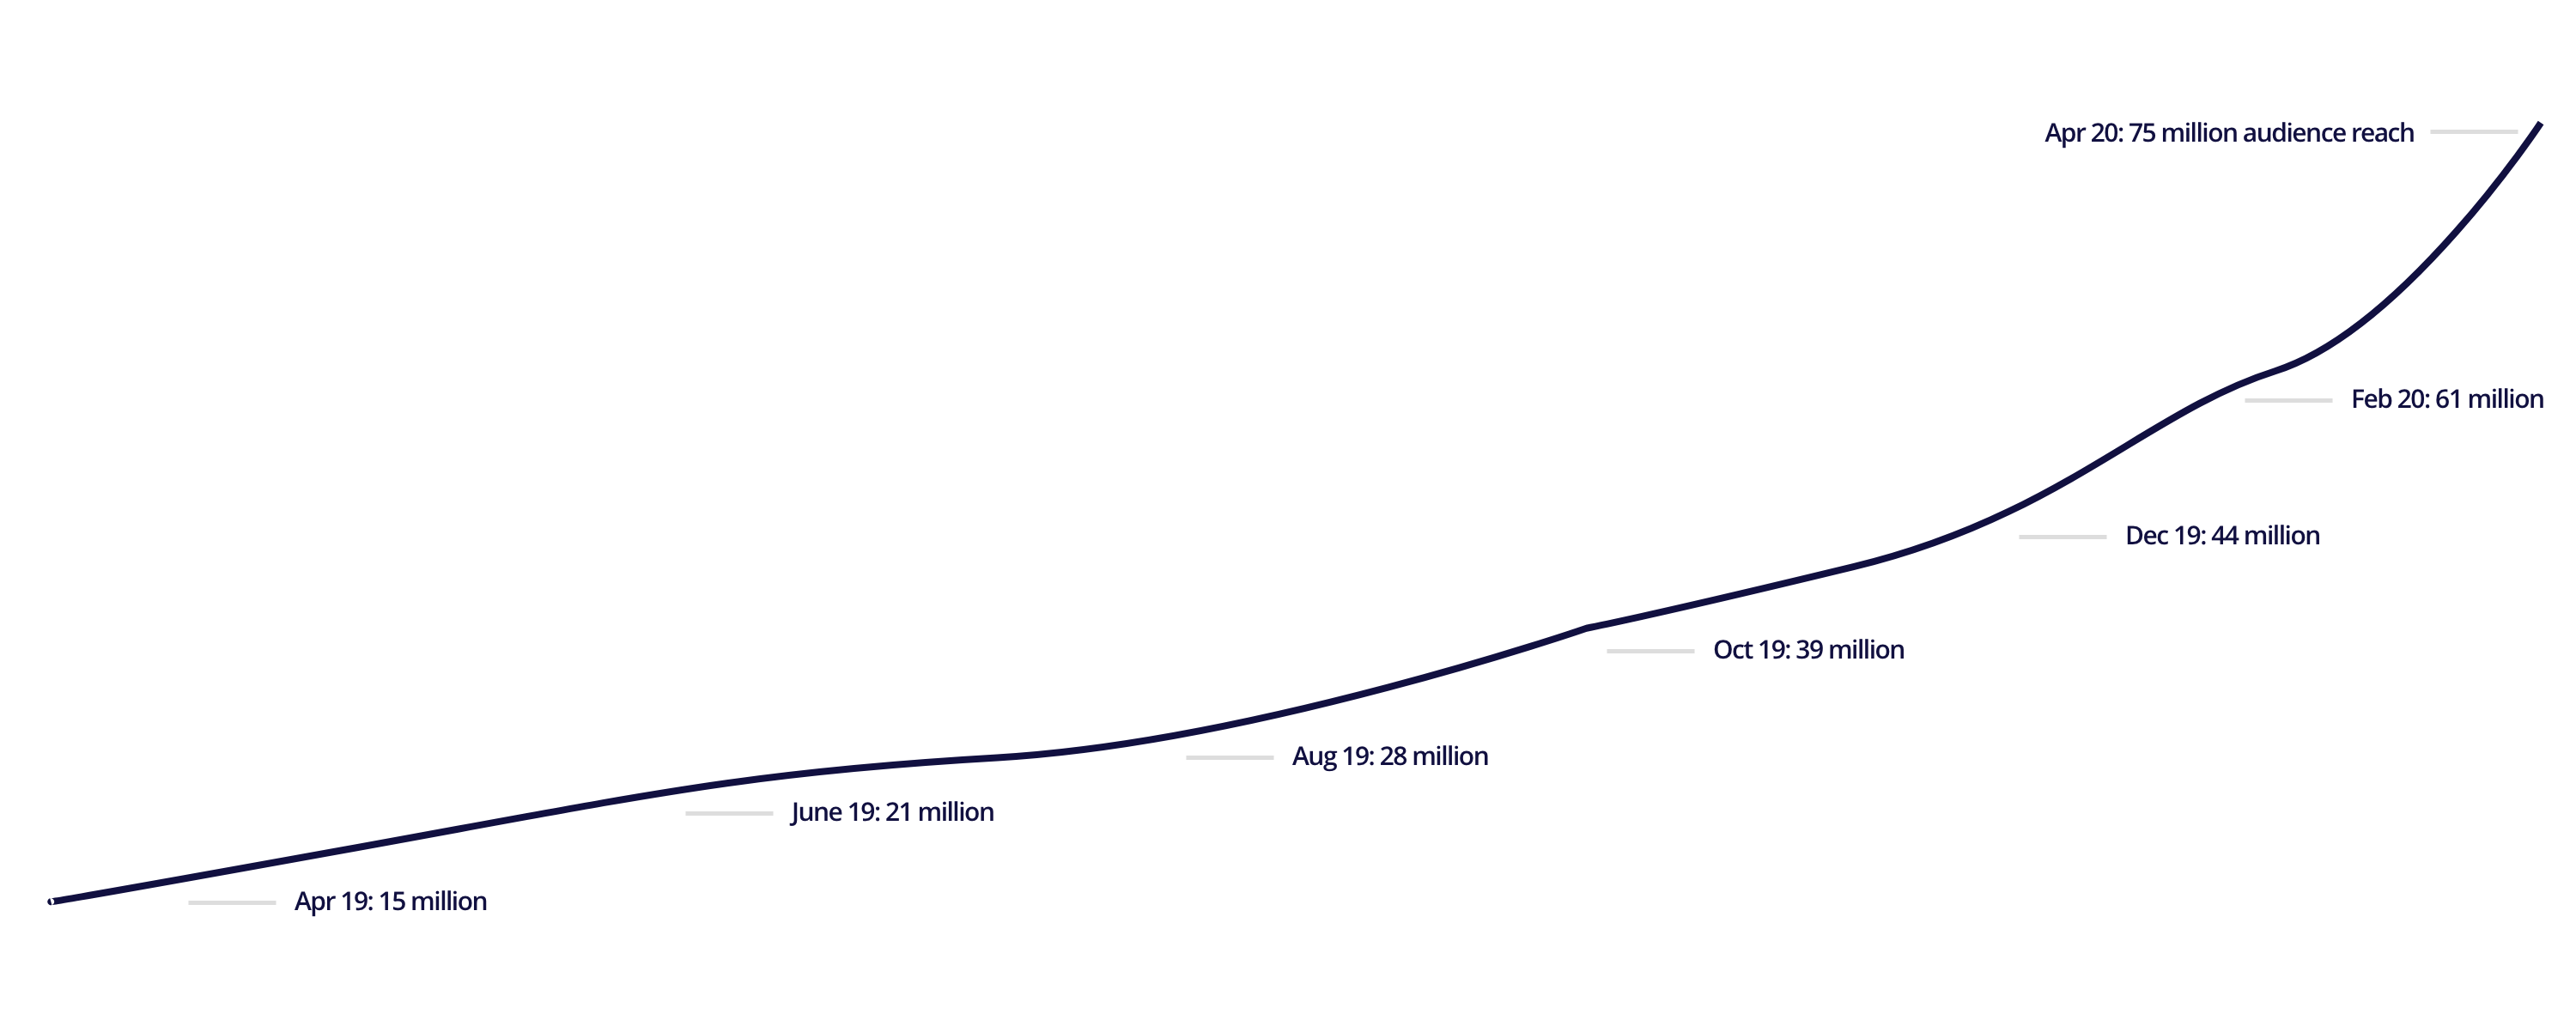 footer-graph